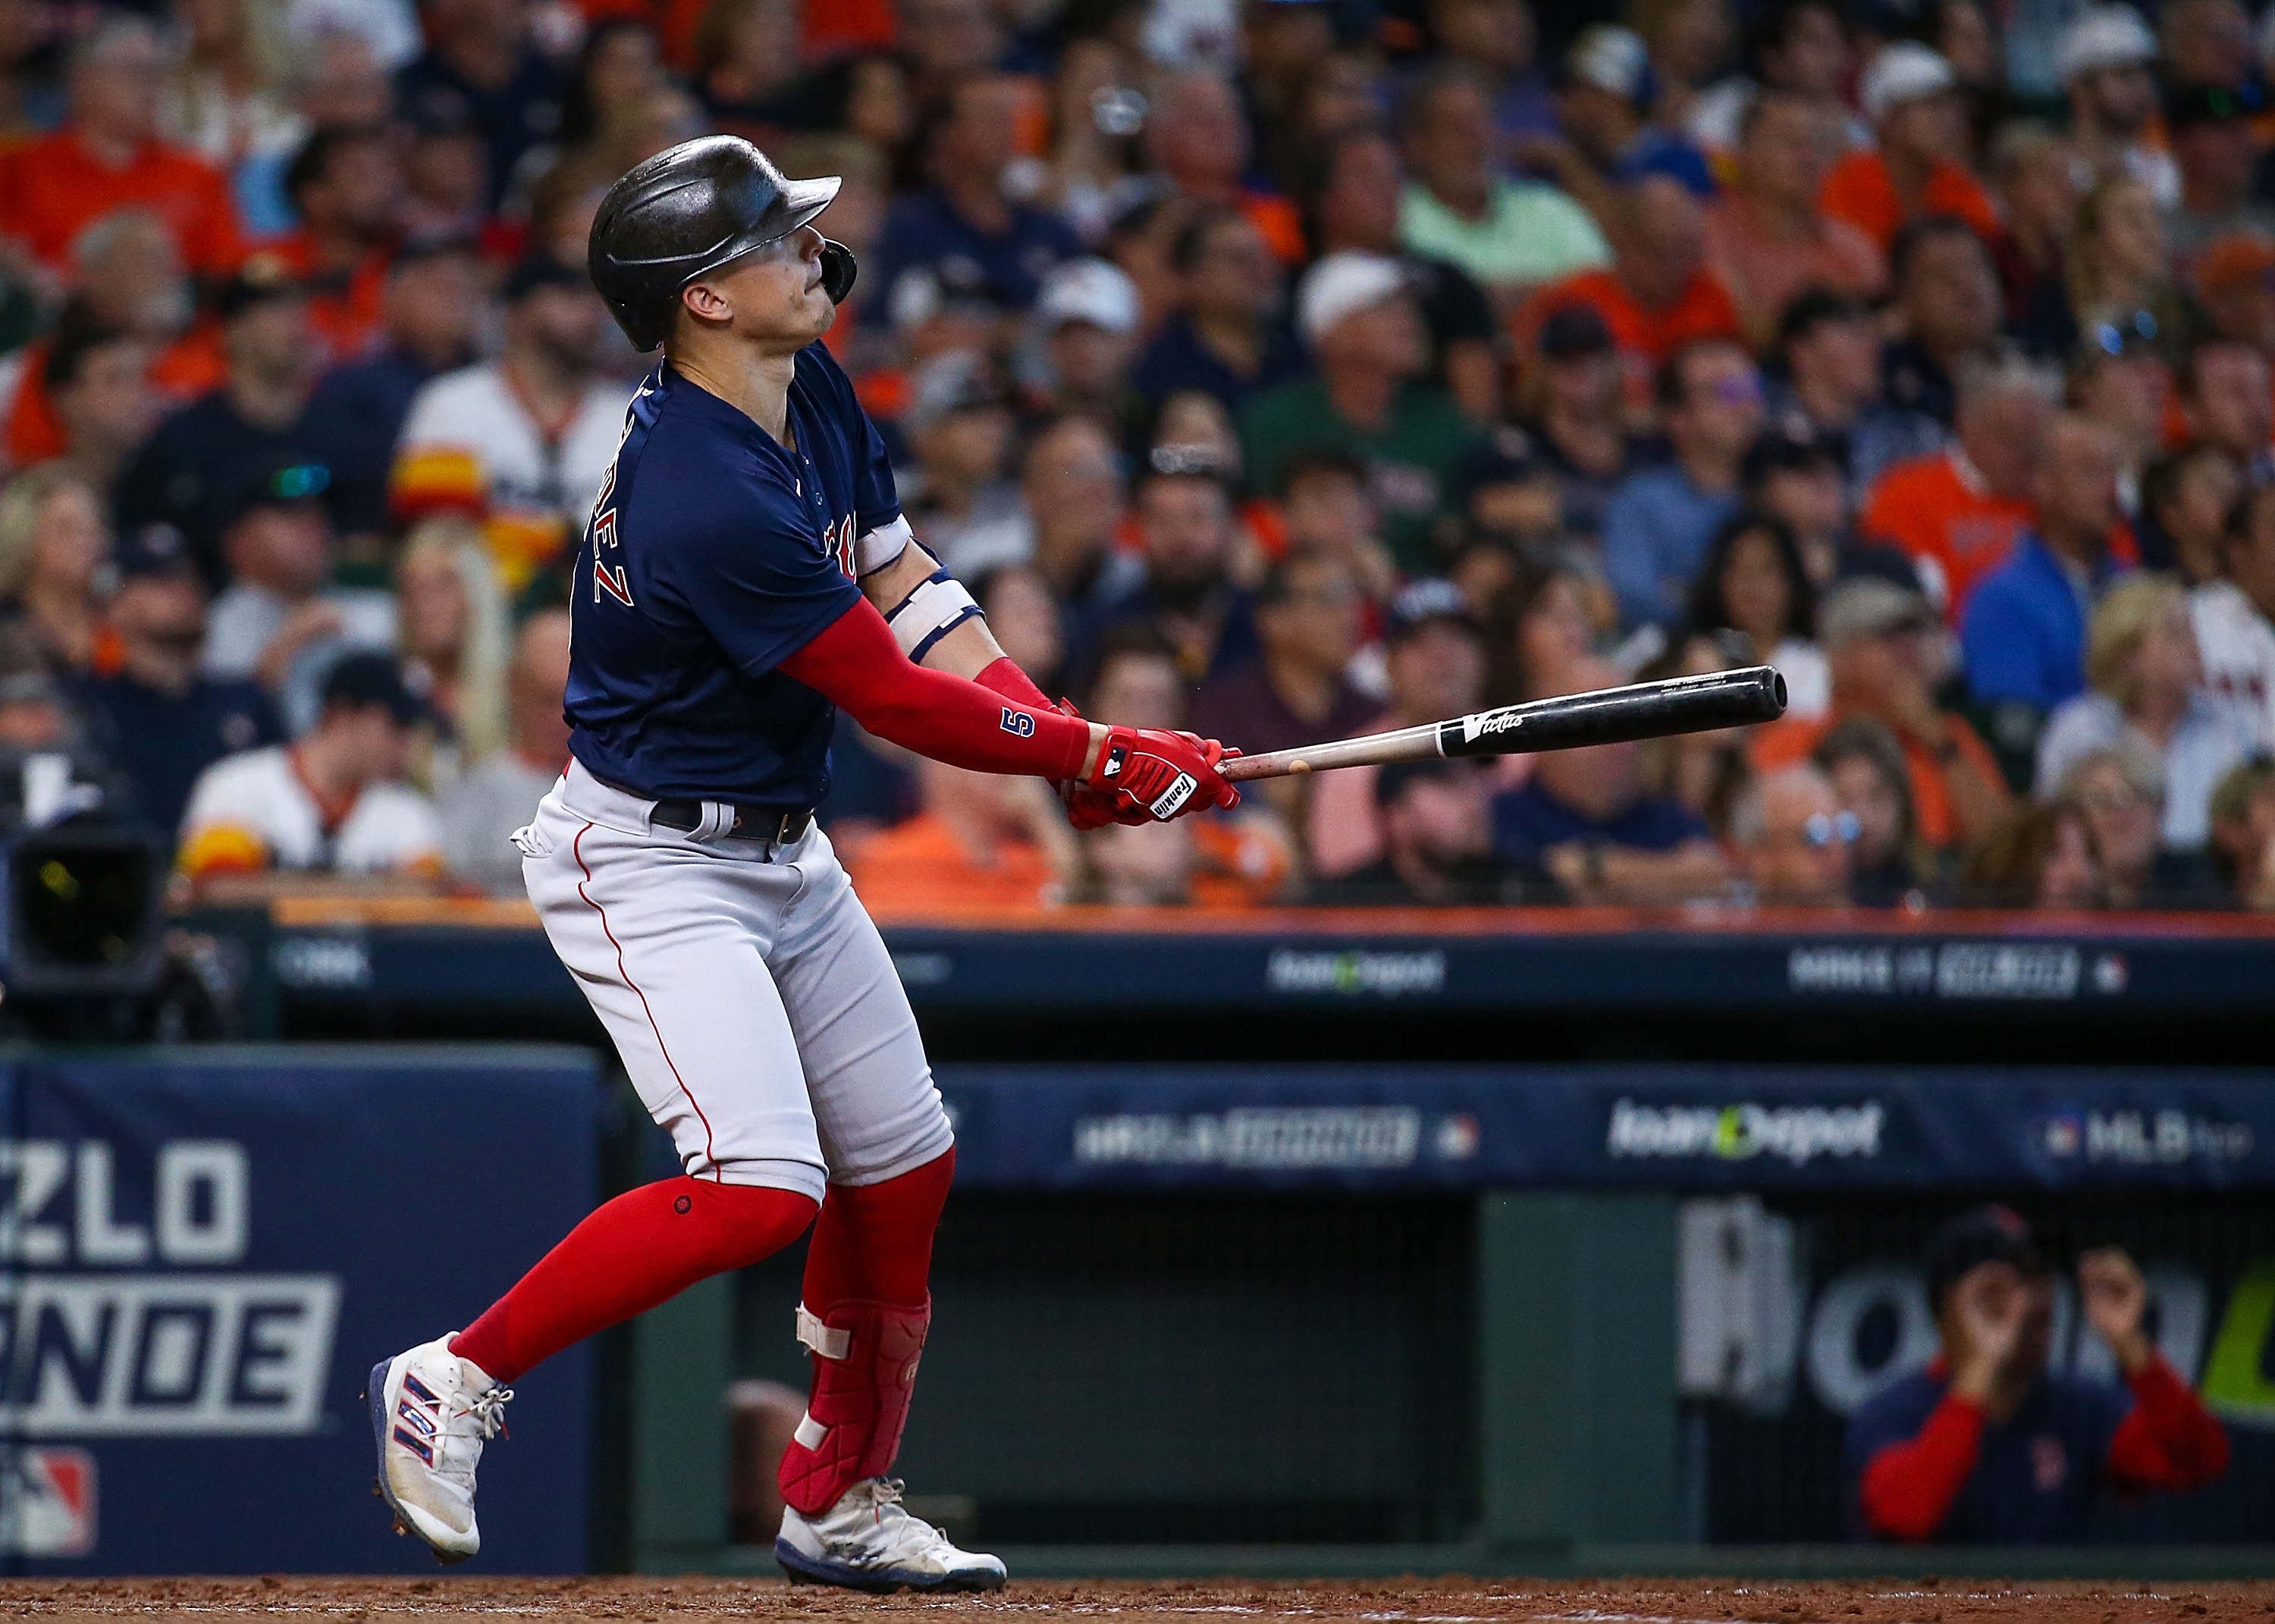 Boston Red Sox center fielder Enrique Hernandez (5) hits a solo home run against the Houston Astros during the fourth inning in game two of the 2021 ALCS at Minute Maid Park.